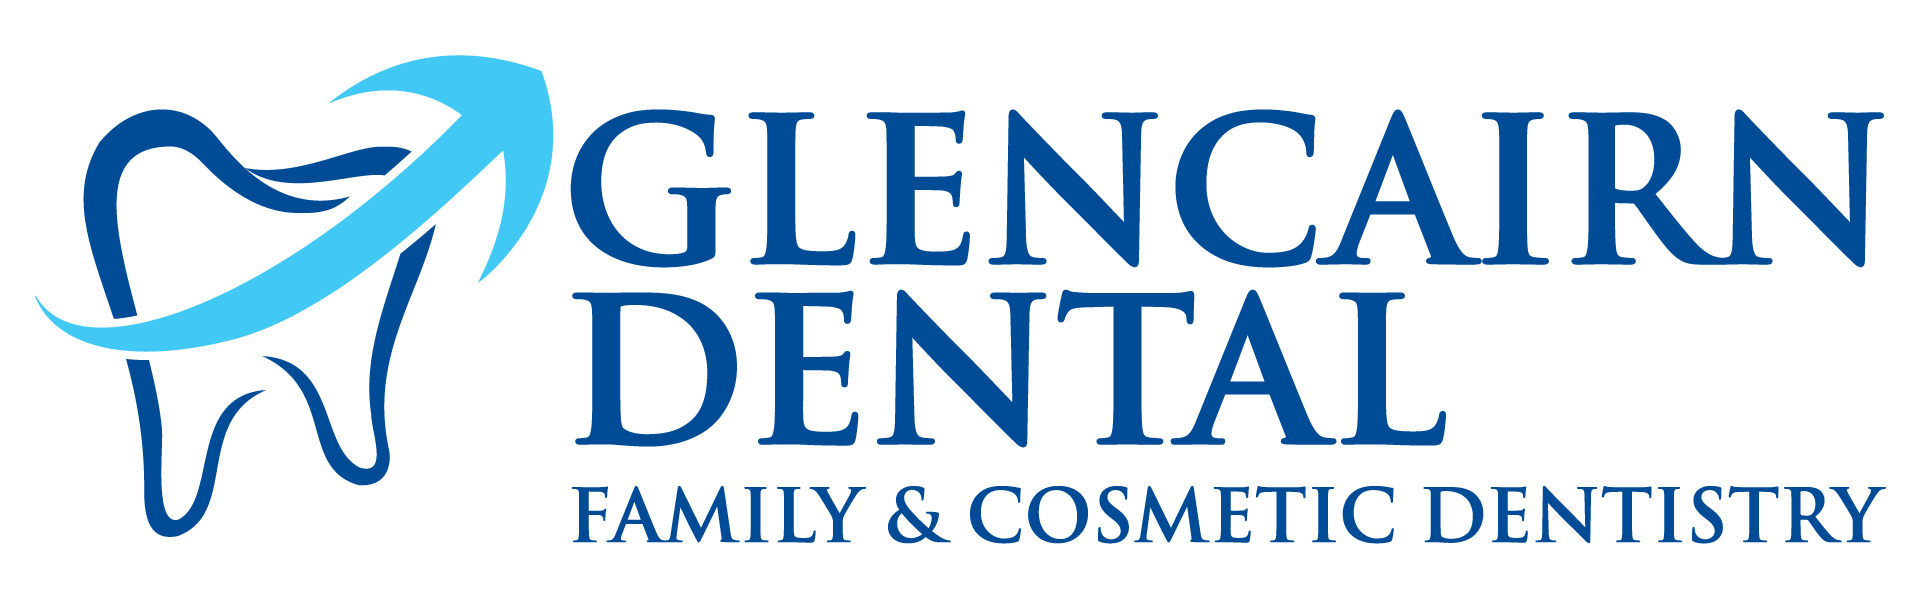 Glencairn Dental